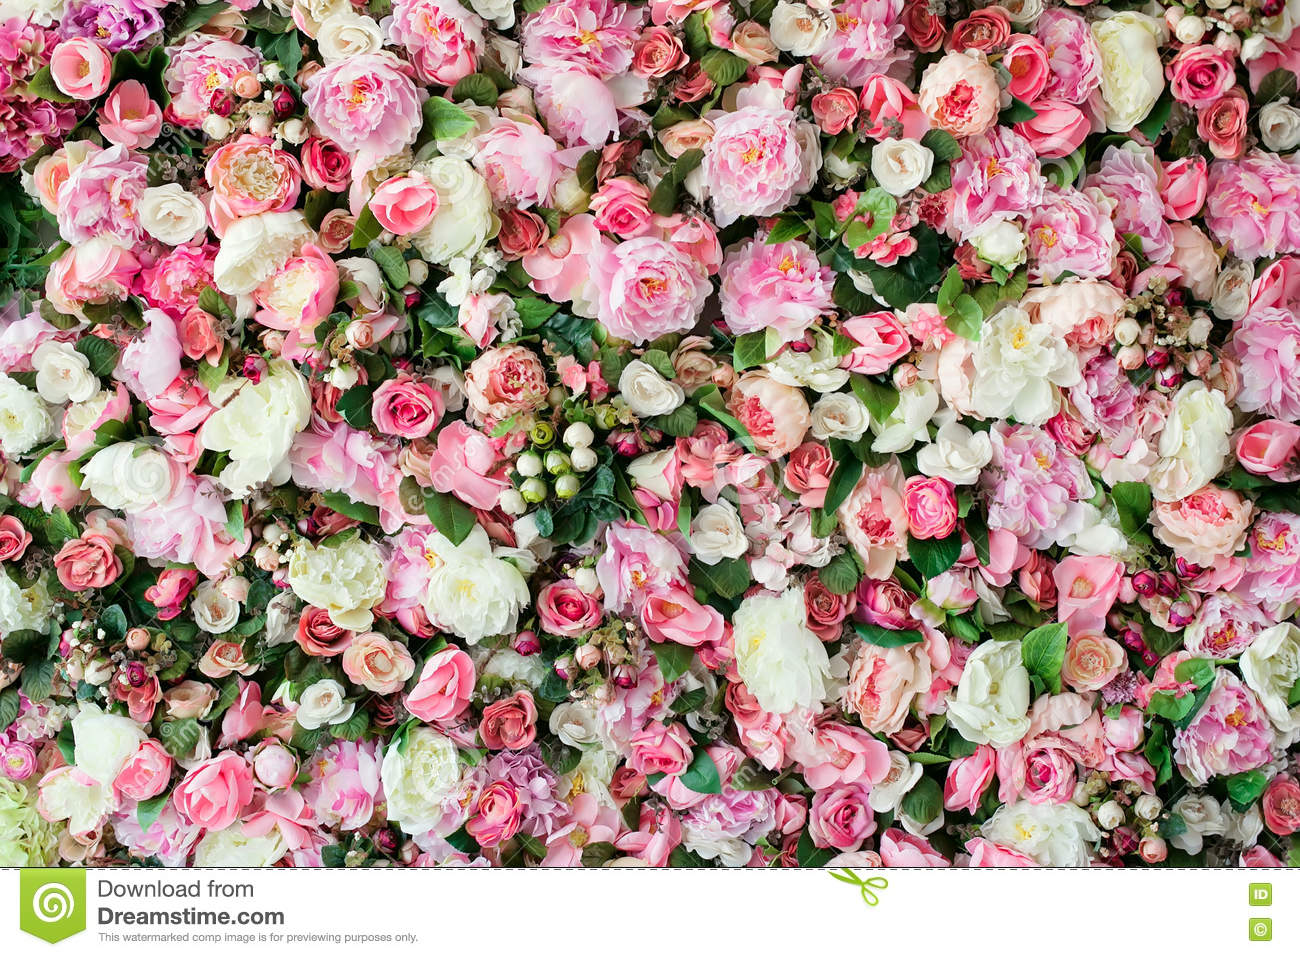 Flower market prices in bangalore dating 1